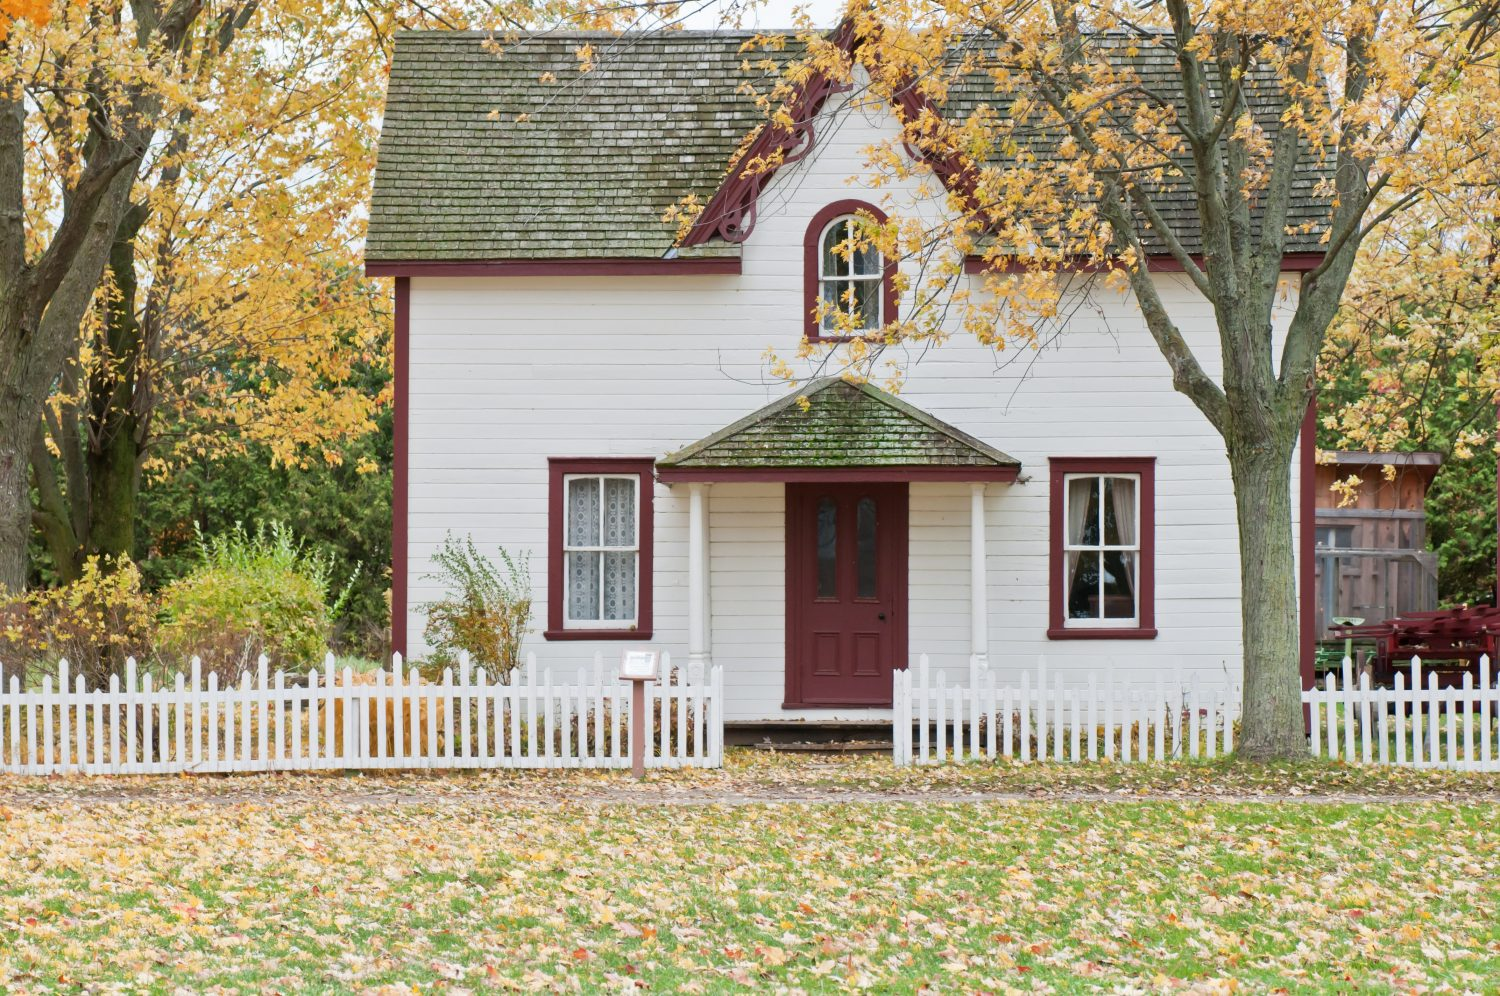 Is it even possible to create a peaceful home environment for your marriage?